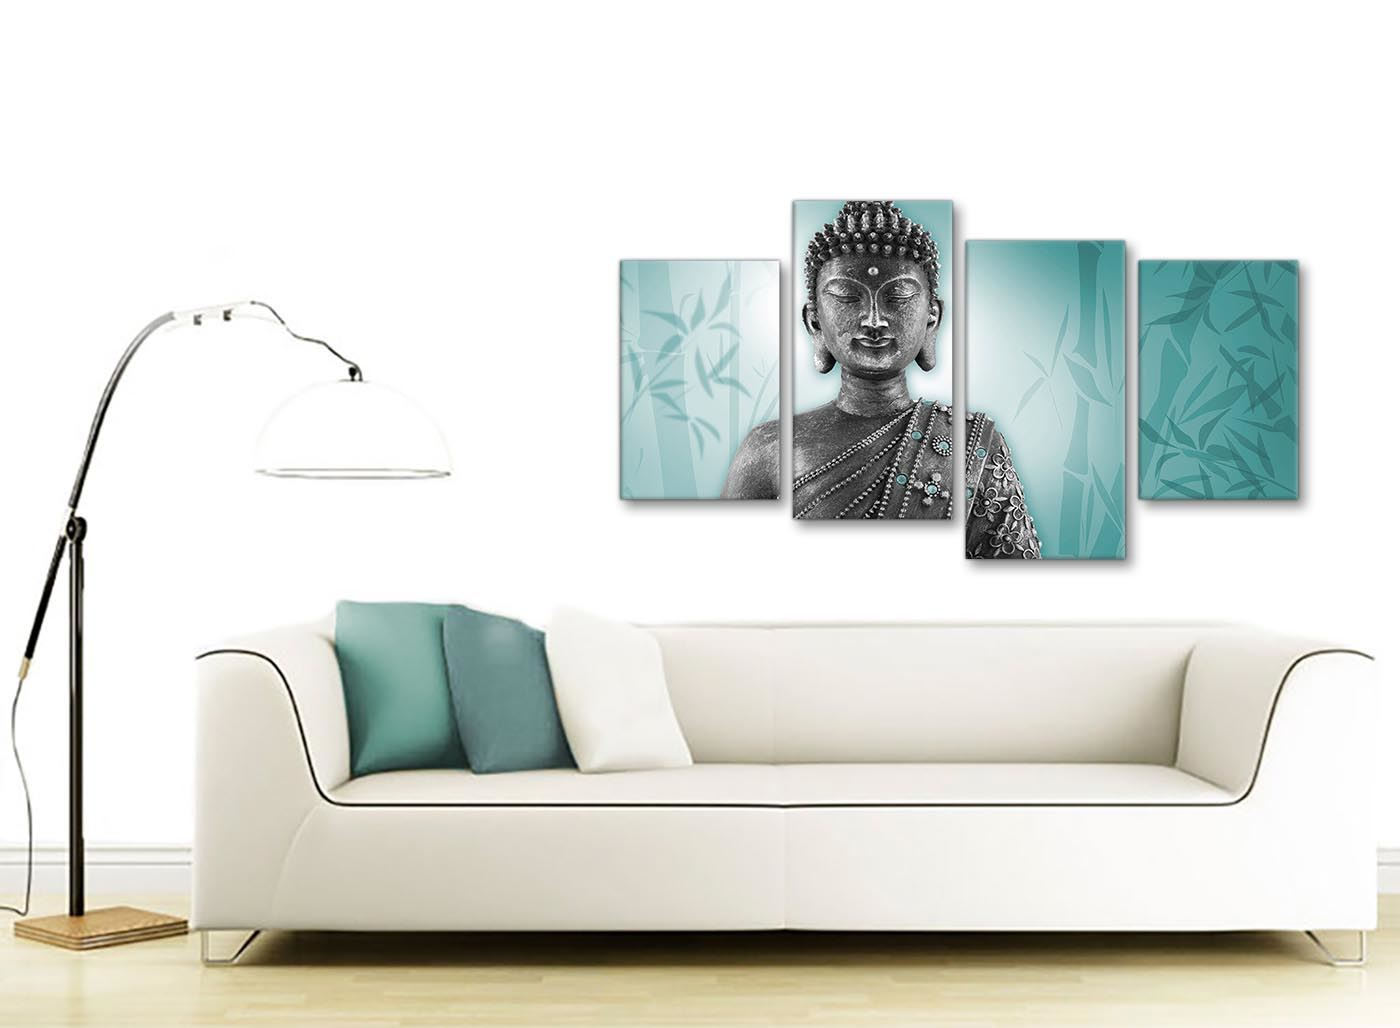 4327 Large Teal and Grey Silver Canvas Art Prints of Buddha Split 4 Piece